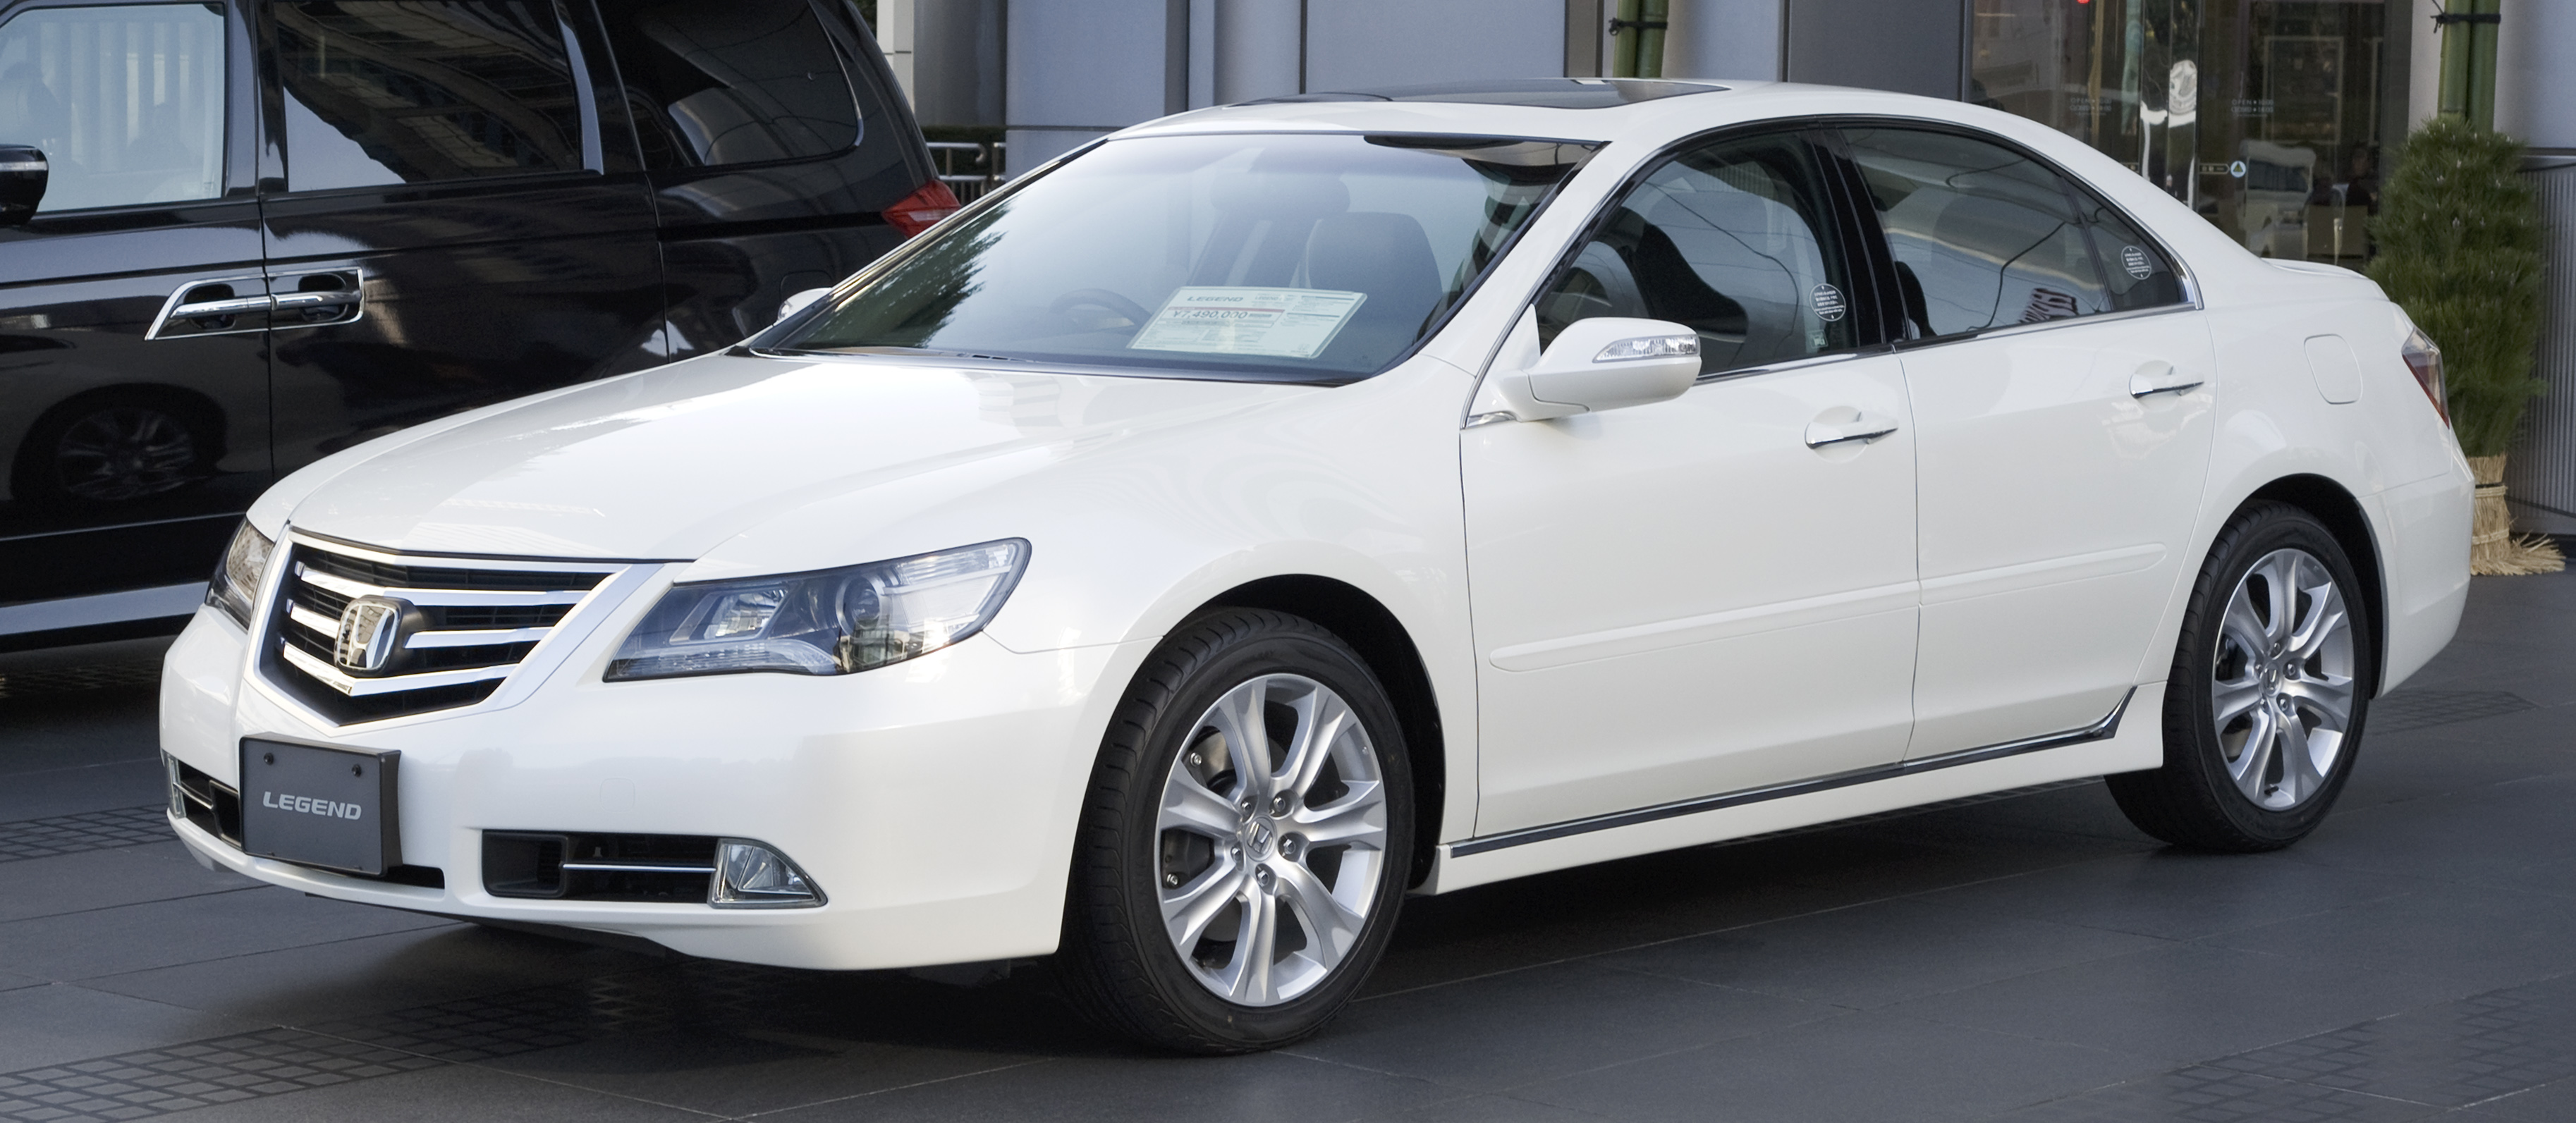 2010 Honda Legend #4